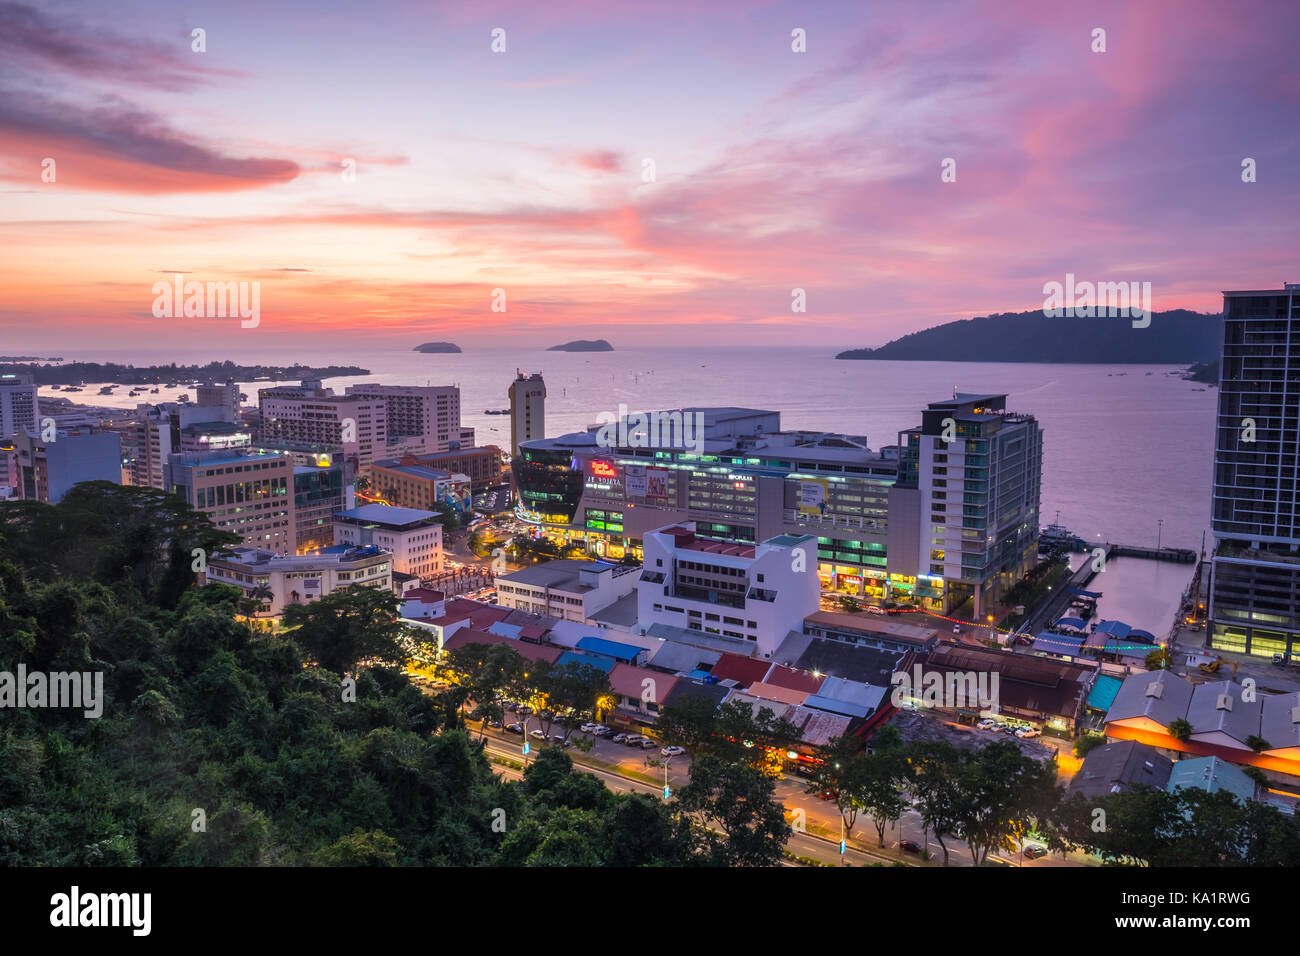 Kota Kinabalu at night with view featuring Suria Sabah and South China Sea Stock Photo